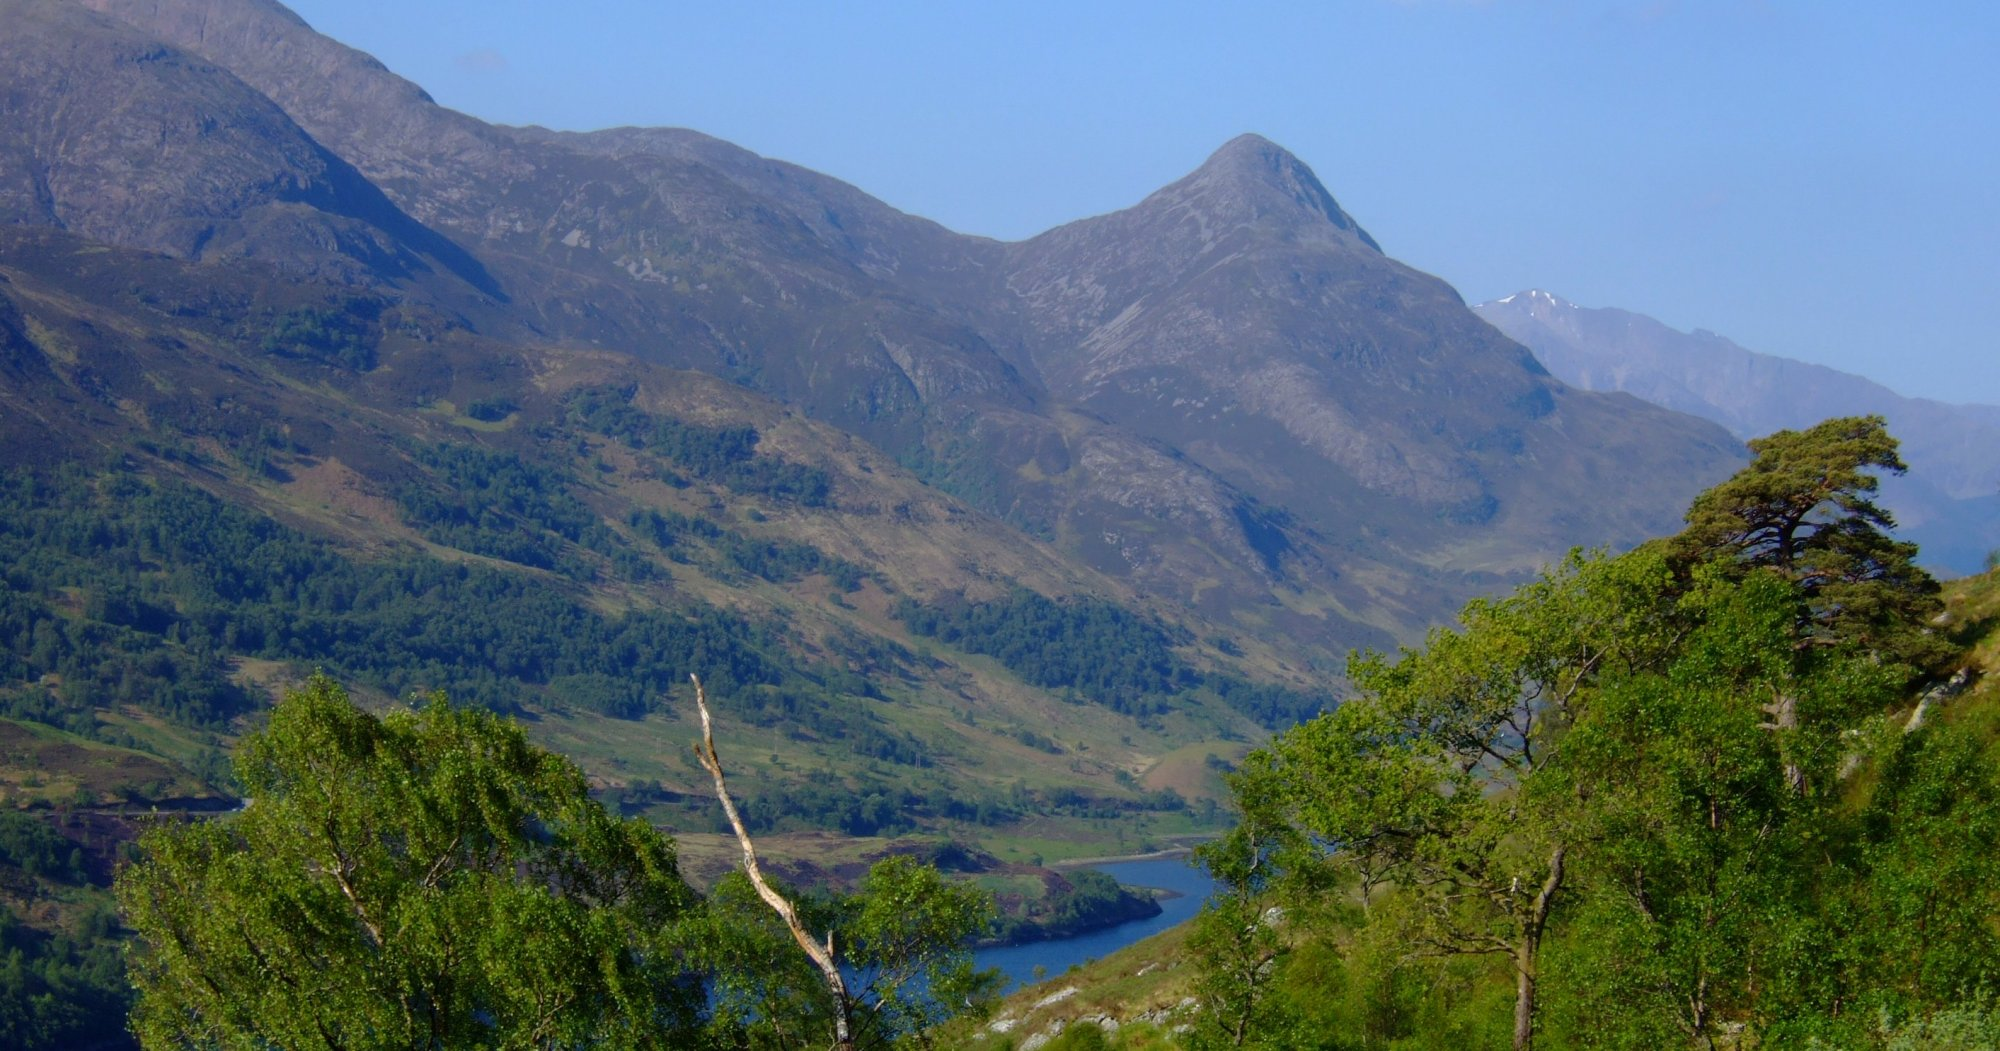 Loch Leven with the Pap of Glencoe looking like a proper mountain